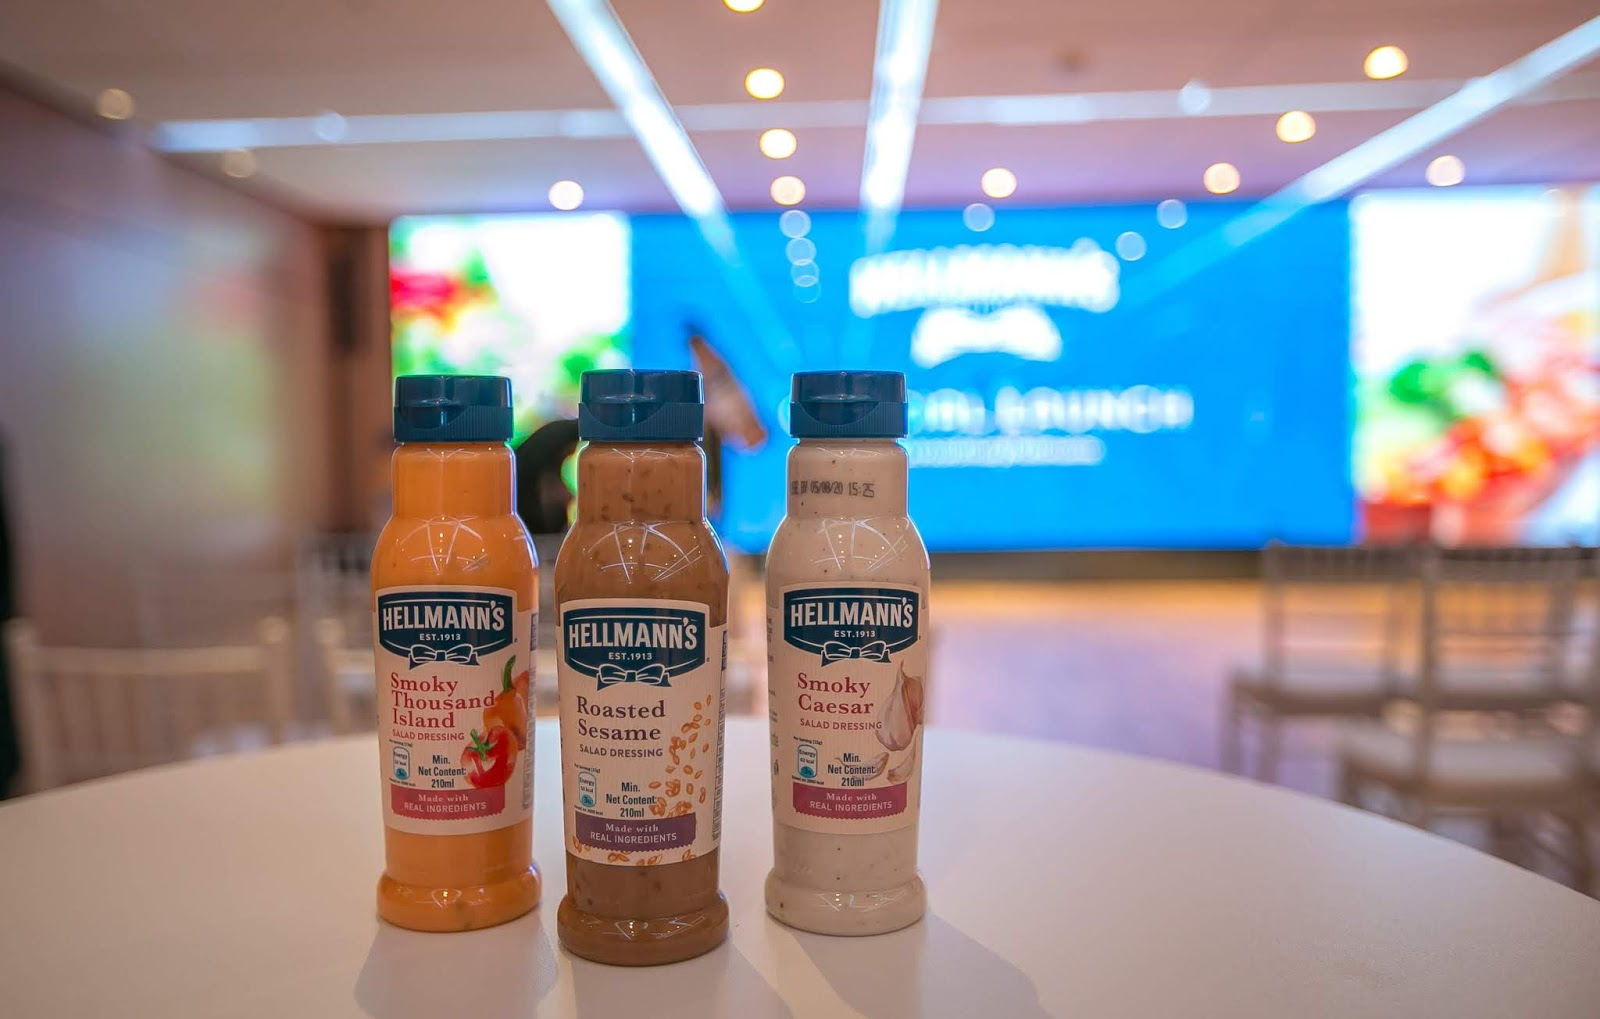 [Review] Hellmann's Makes Its Malaysian Debut With New Salad Dressing Range